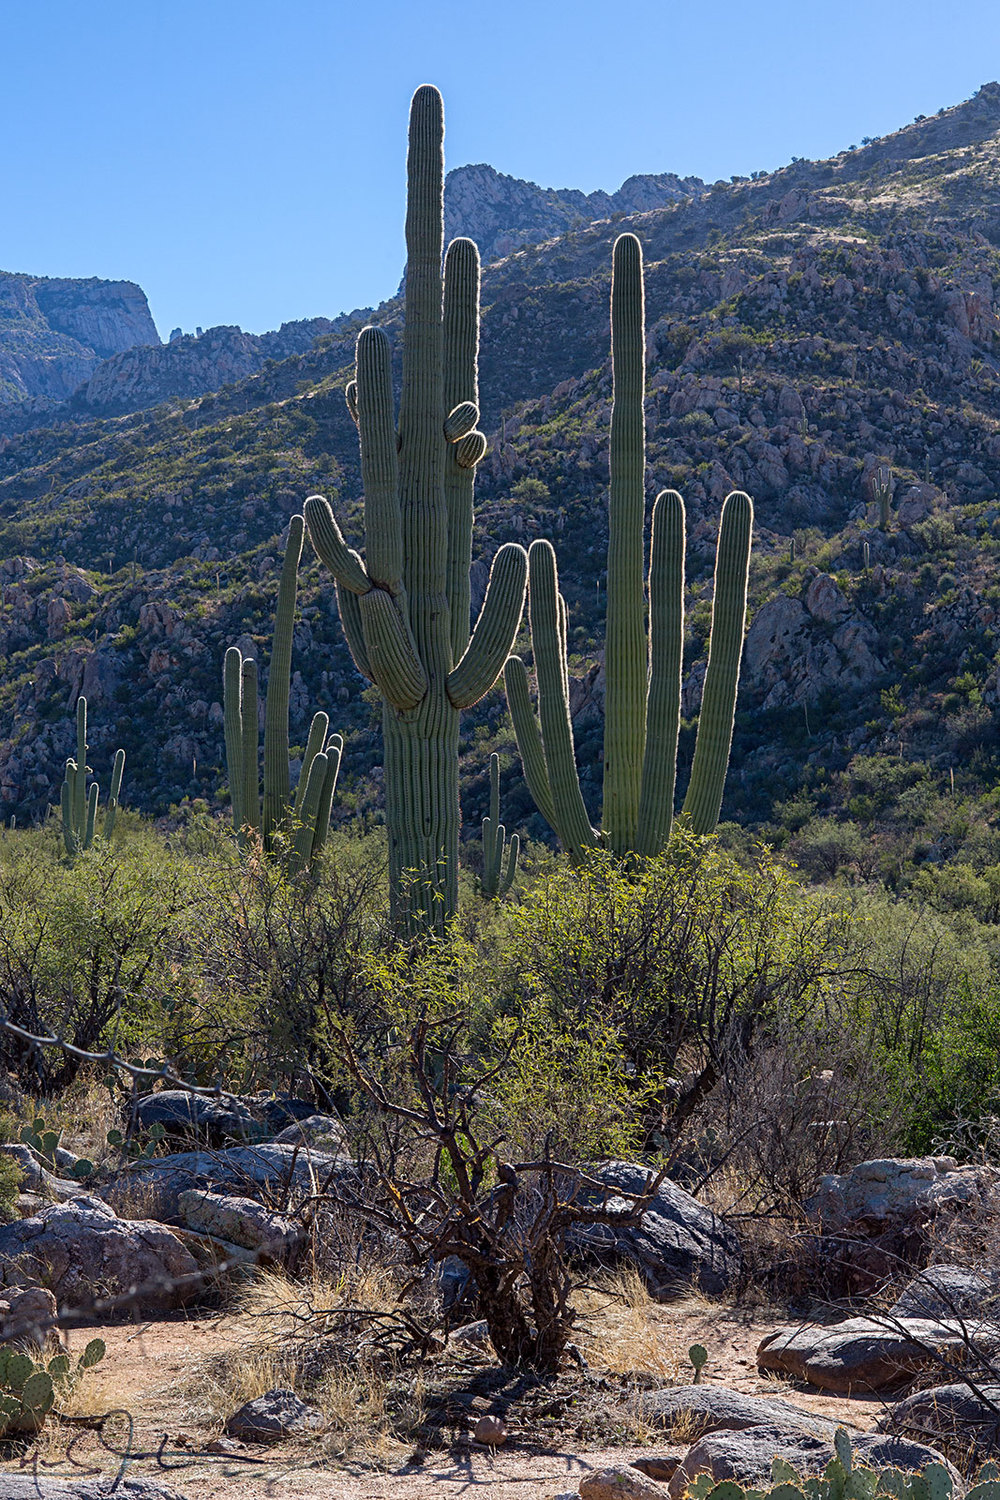 Saguaro cacti on the trail to Romero Pools outside of Tucson, Arizona.